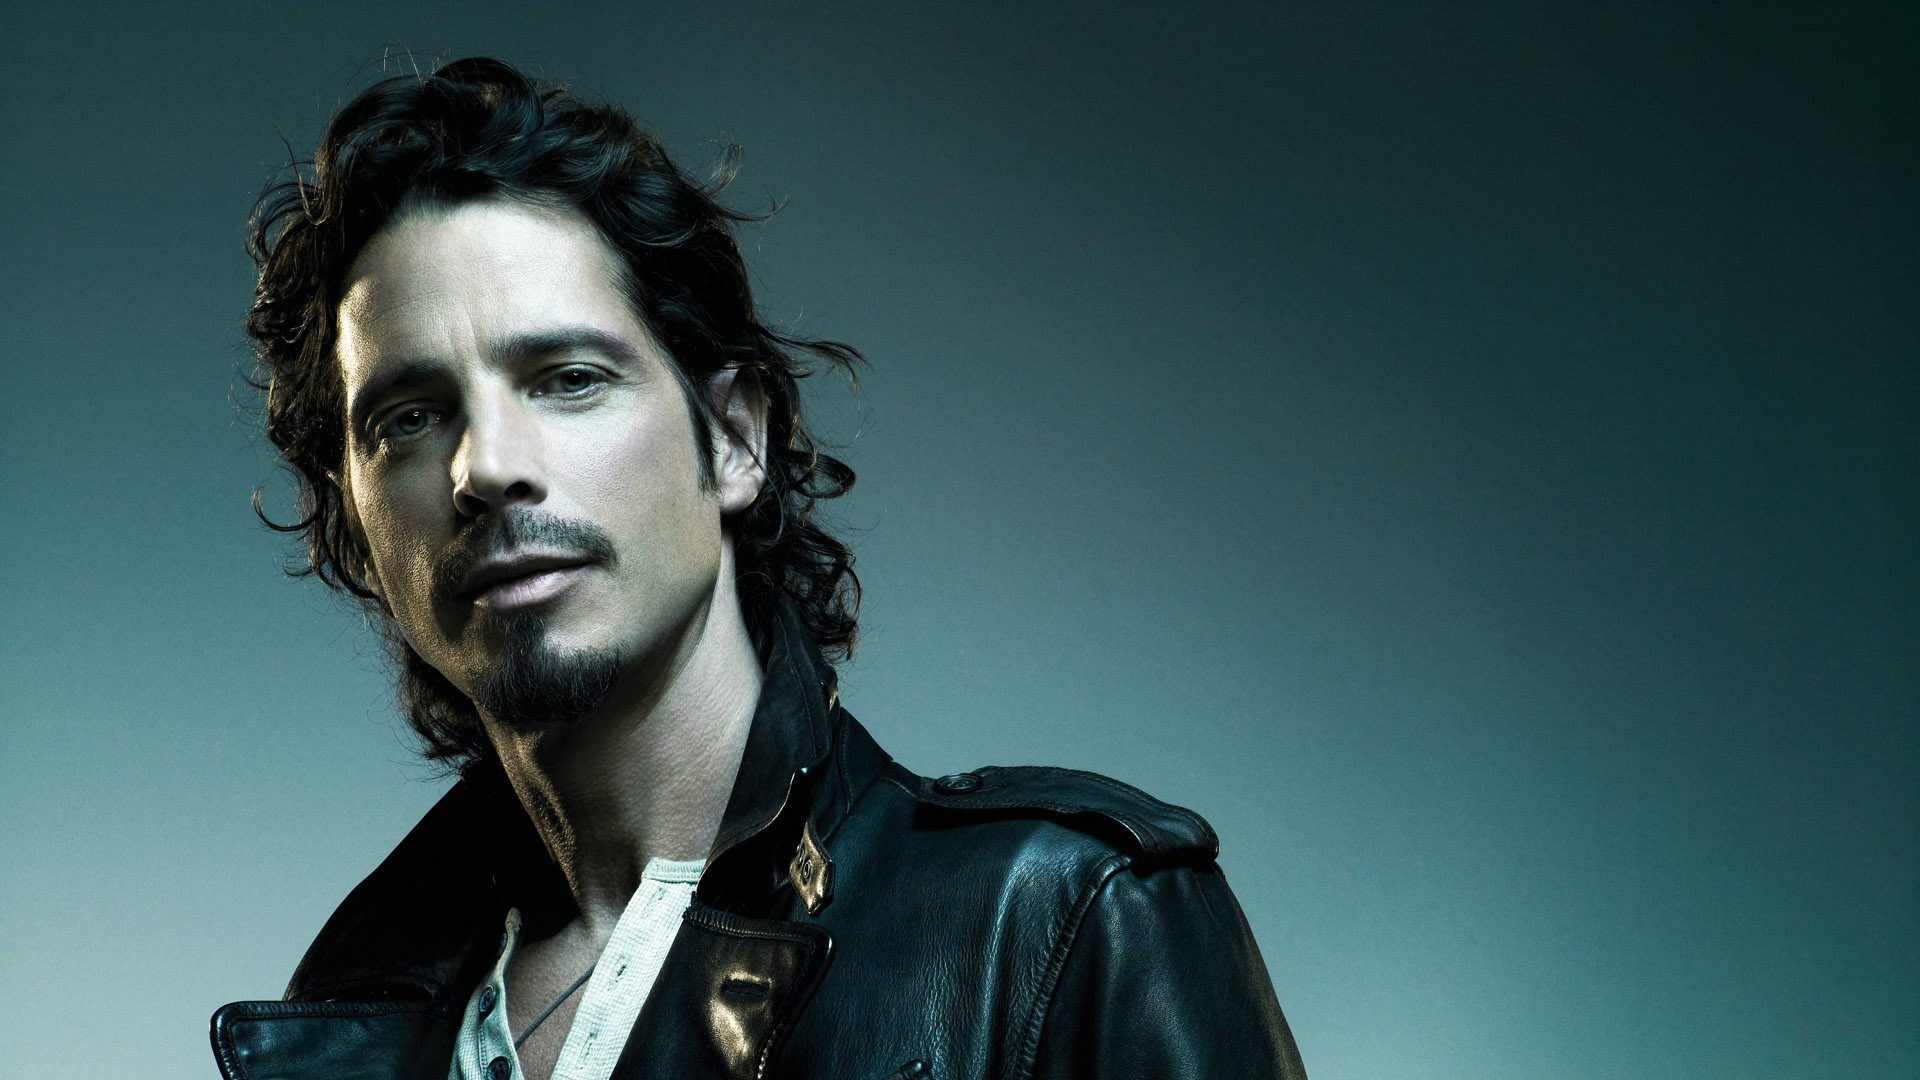 1 Chris Cornell HD Wallpapers | Backgrounds - Wallpaper Abyss